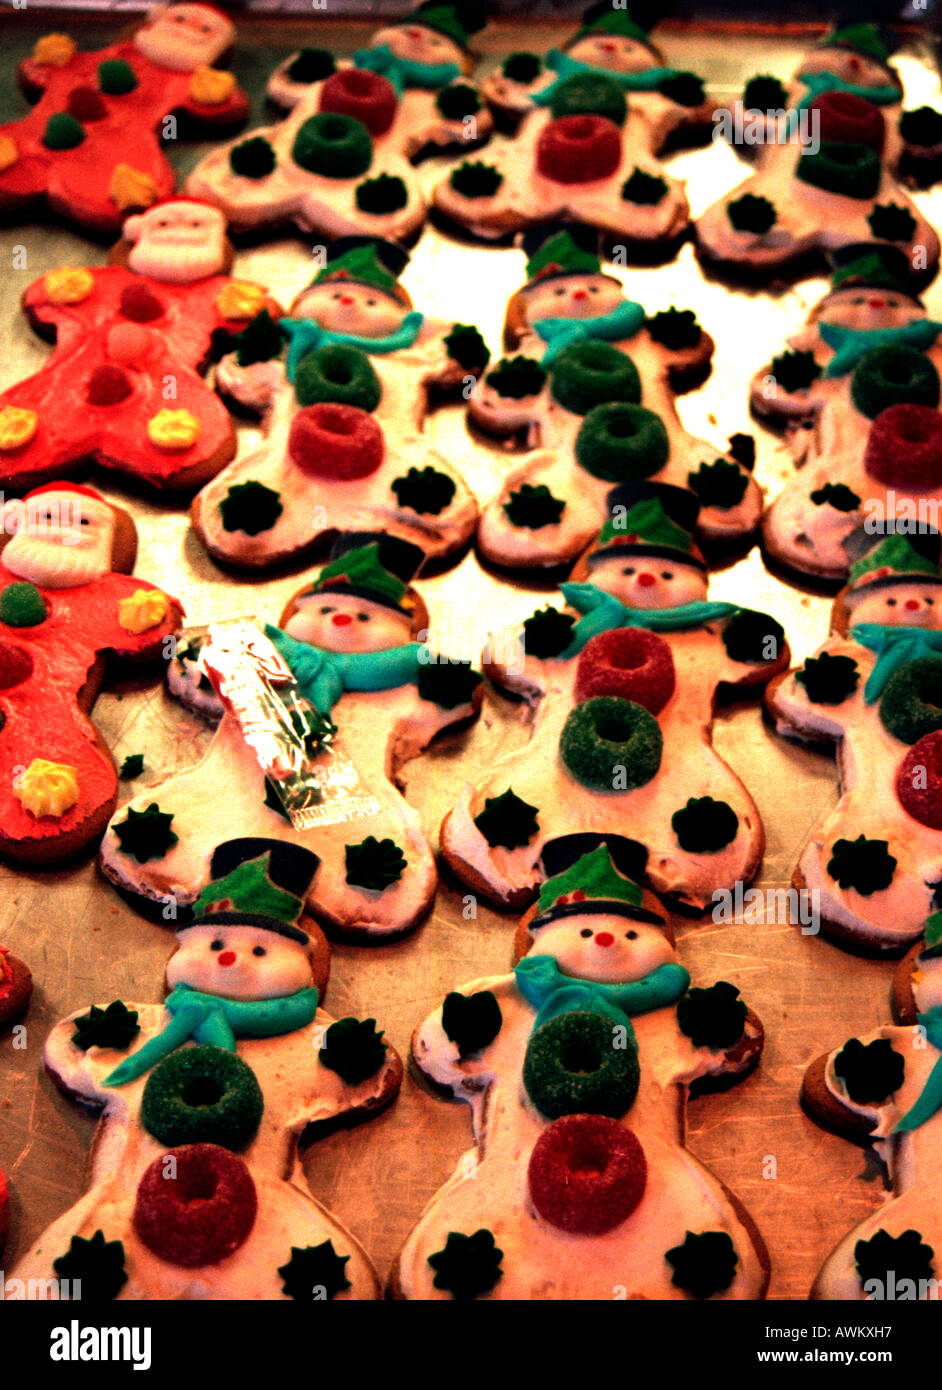 Christmas Cookies In An American Bakers Shop Stock Photo 9490070